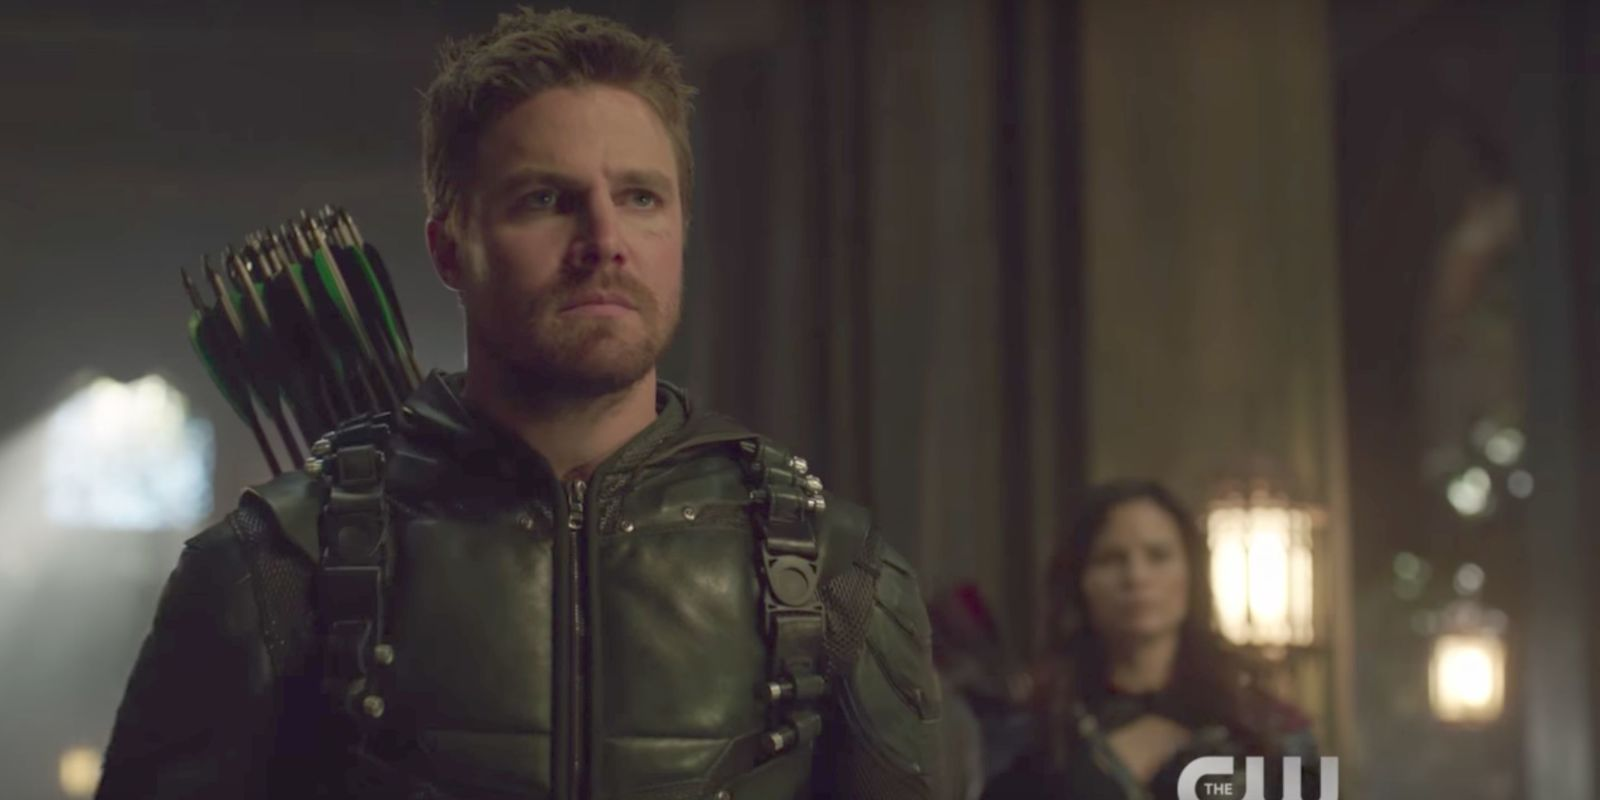 Arrow Season 7 Plot Spoilers Hint At Olivers Fate And New Villain